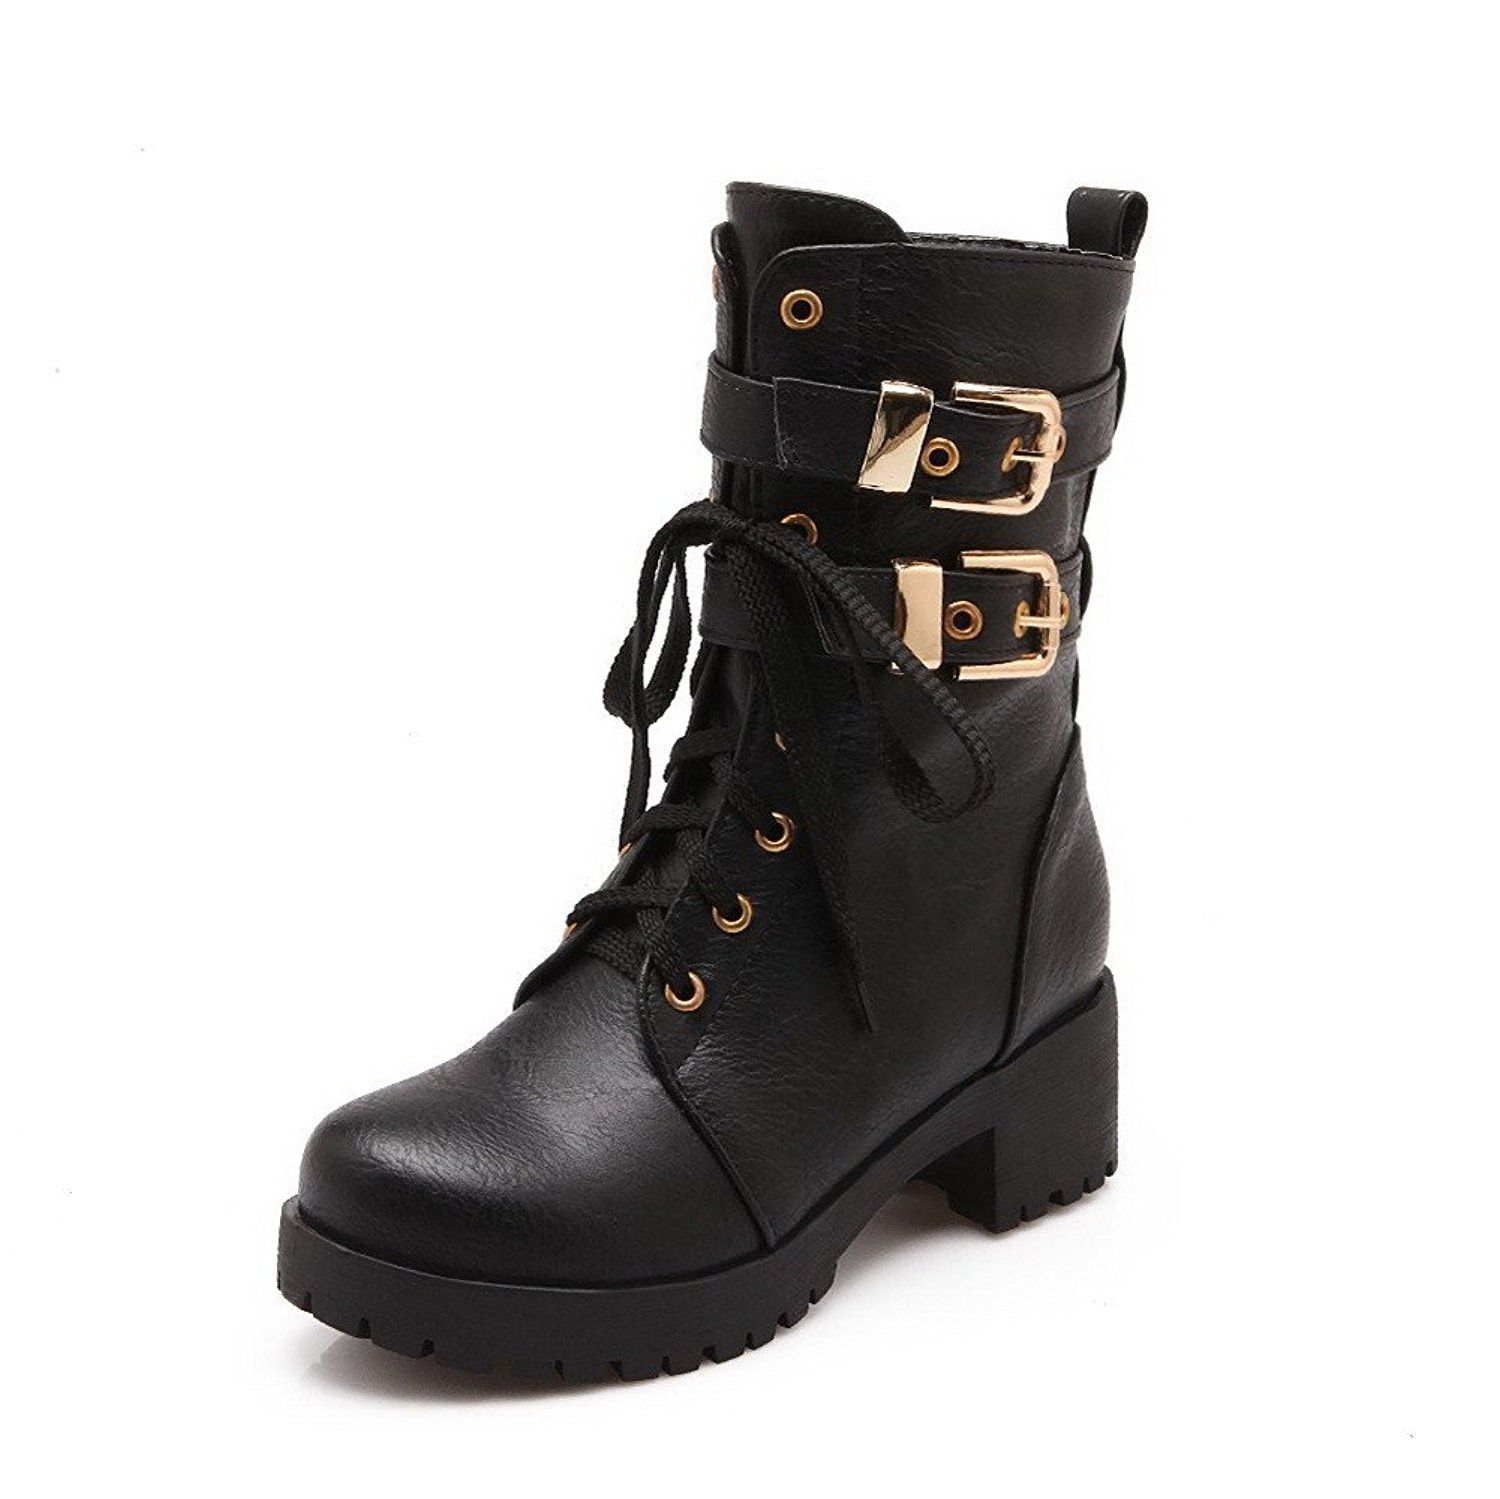 WeiPoot Womens Round Closed Toe Kitten Heels PU Soft Material Solid Boots with Metal Buckles